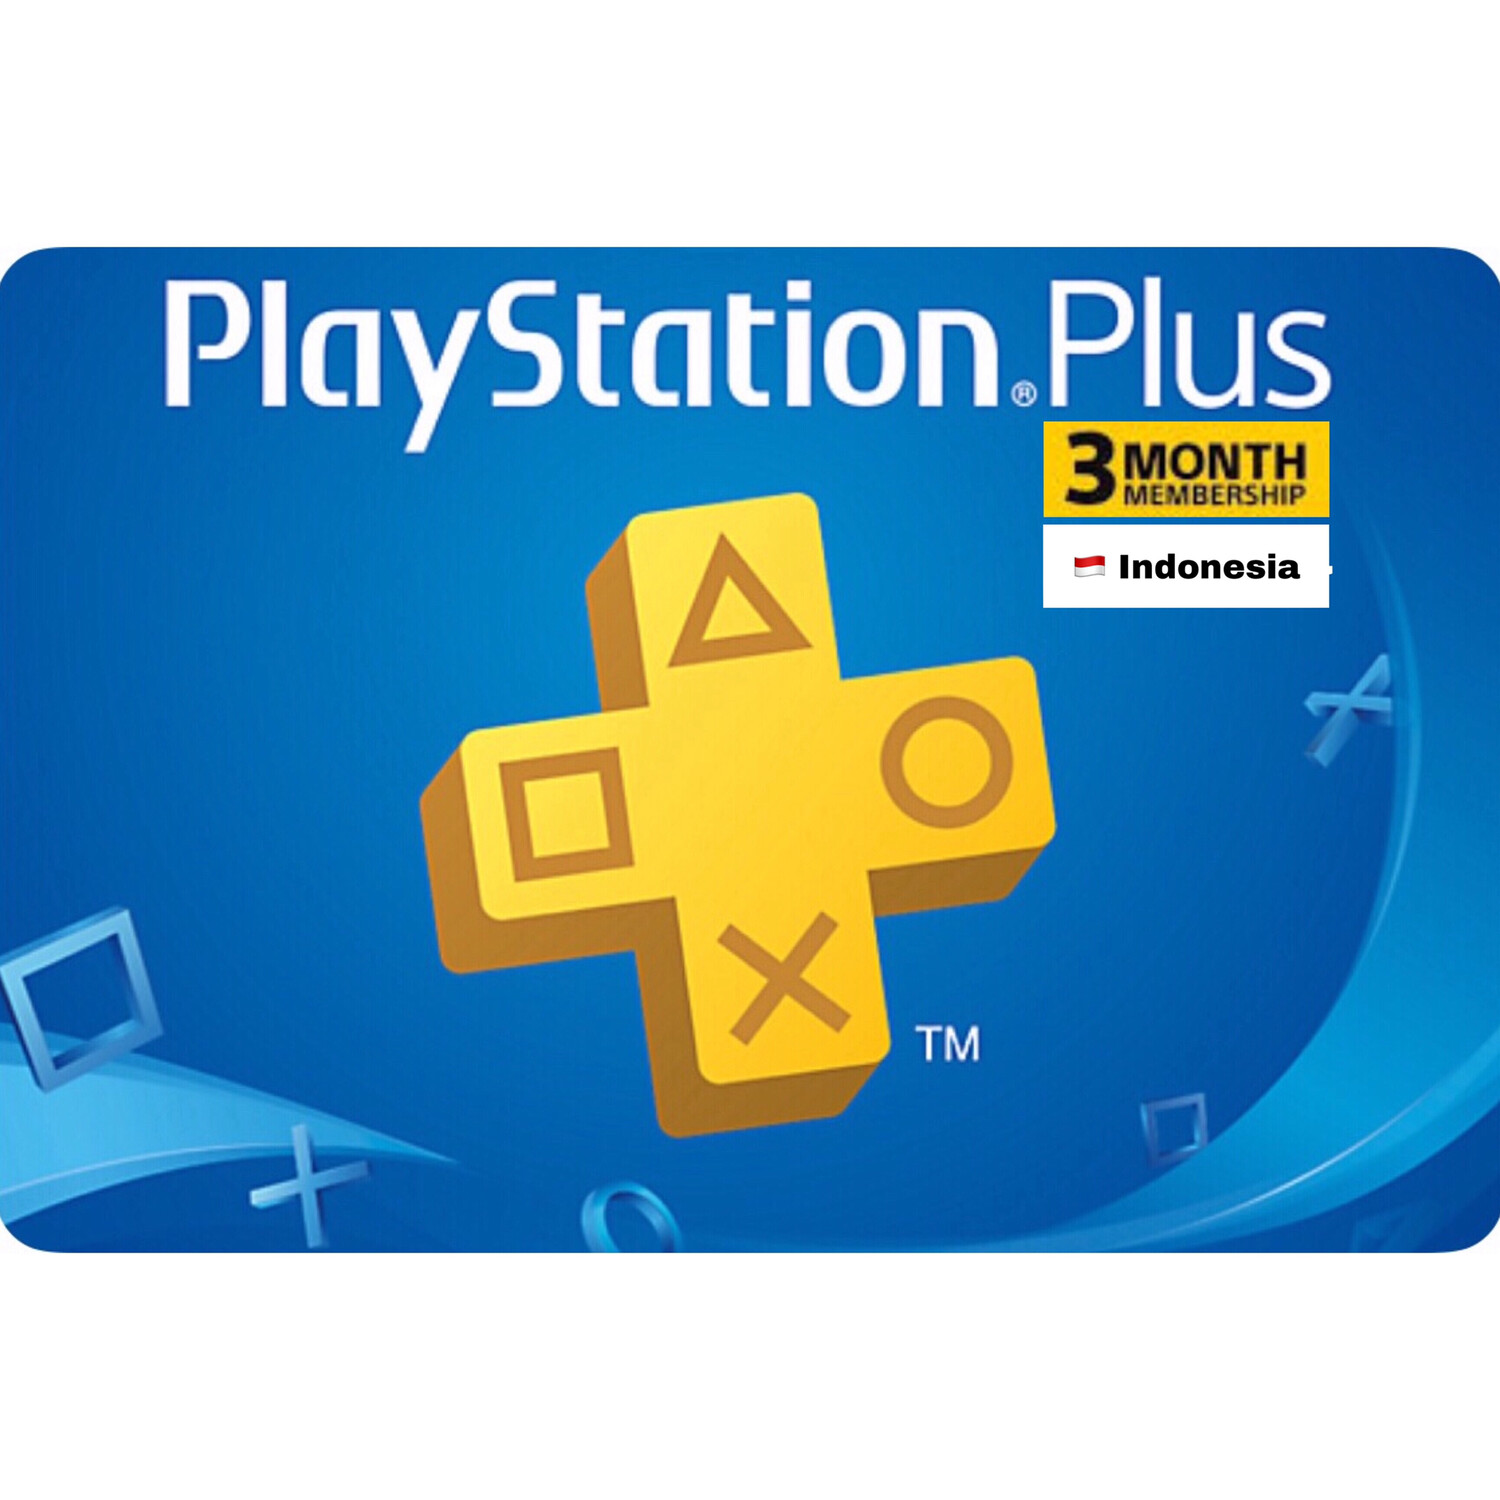 Playstation Plus (PSN Plus) Indonesia 3 Months